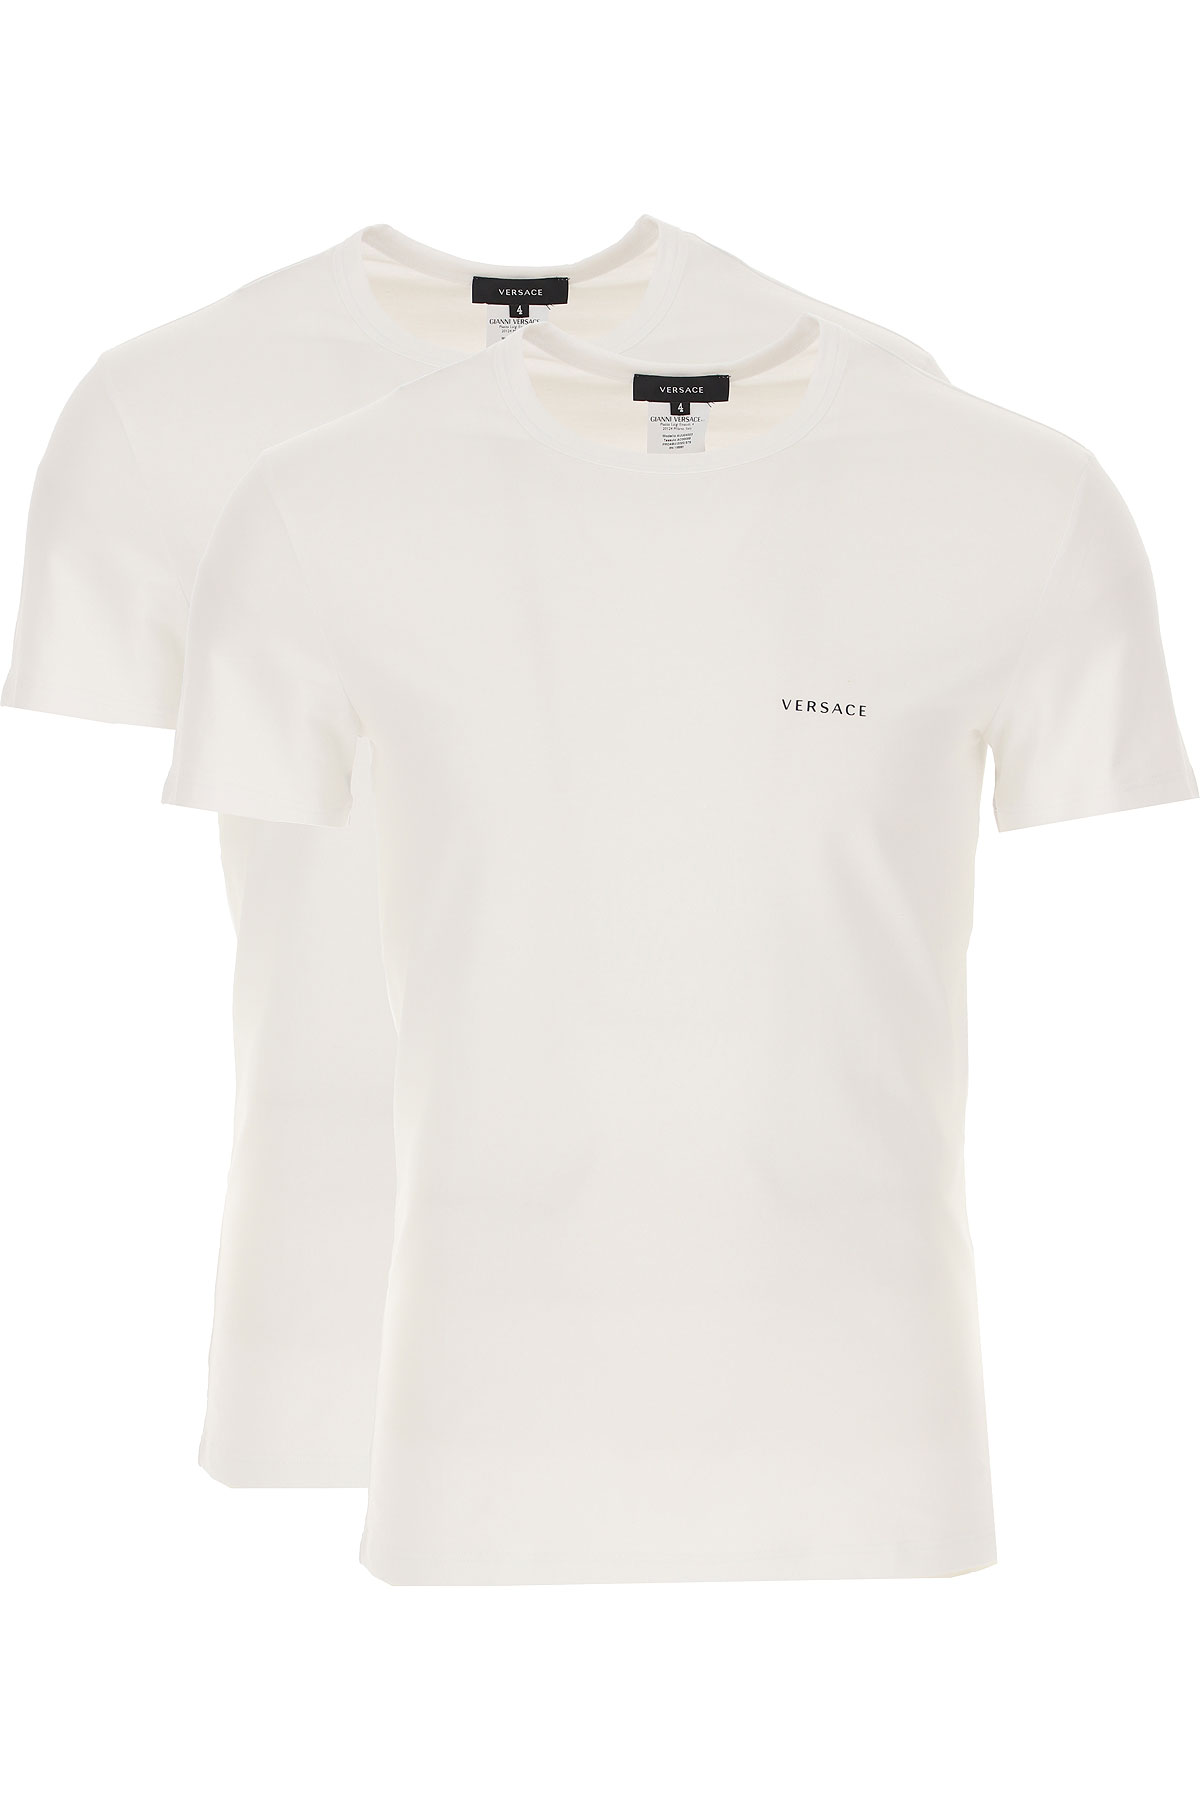 Versace T-Shirt for Men, 2 Pack, White, Cotton, 2021, L M S XS from Versace